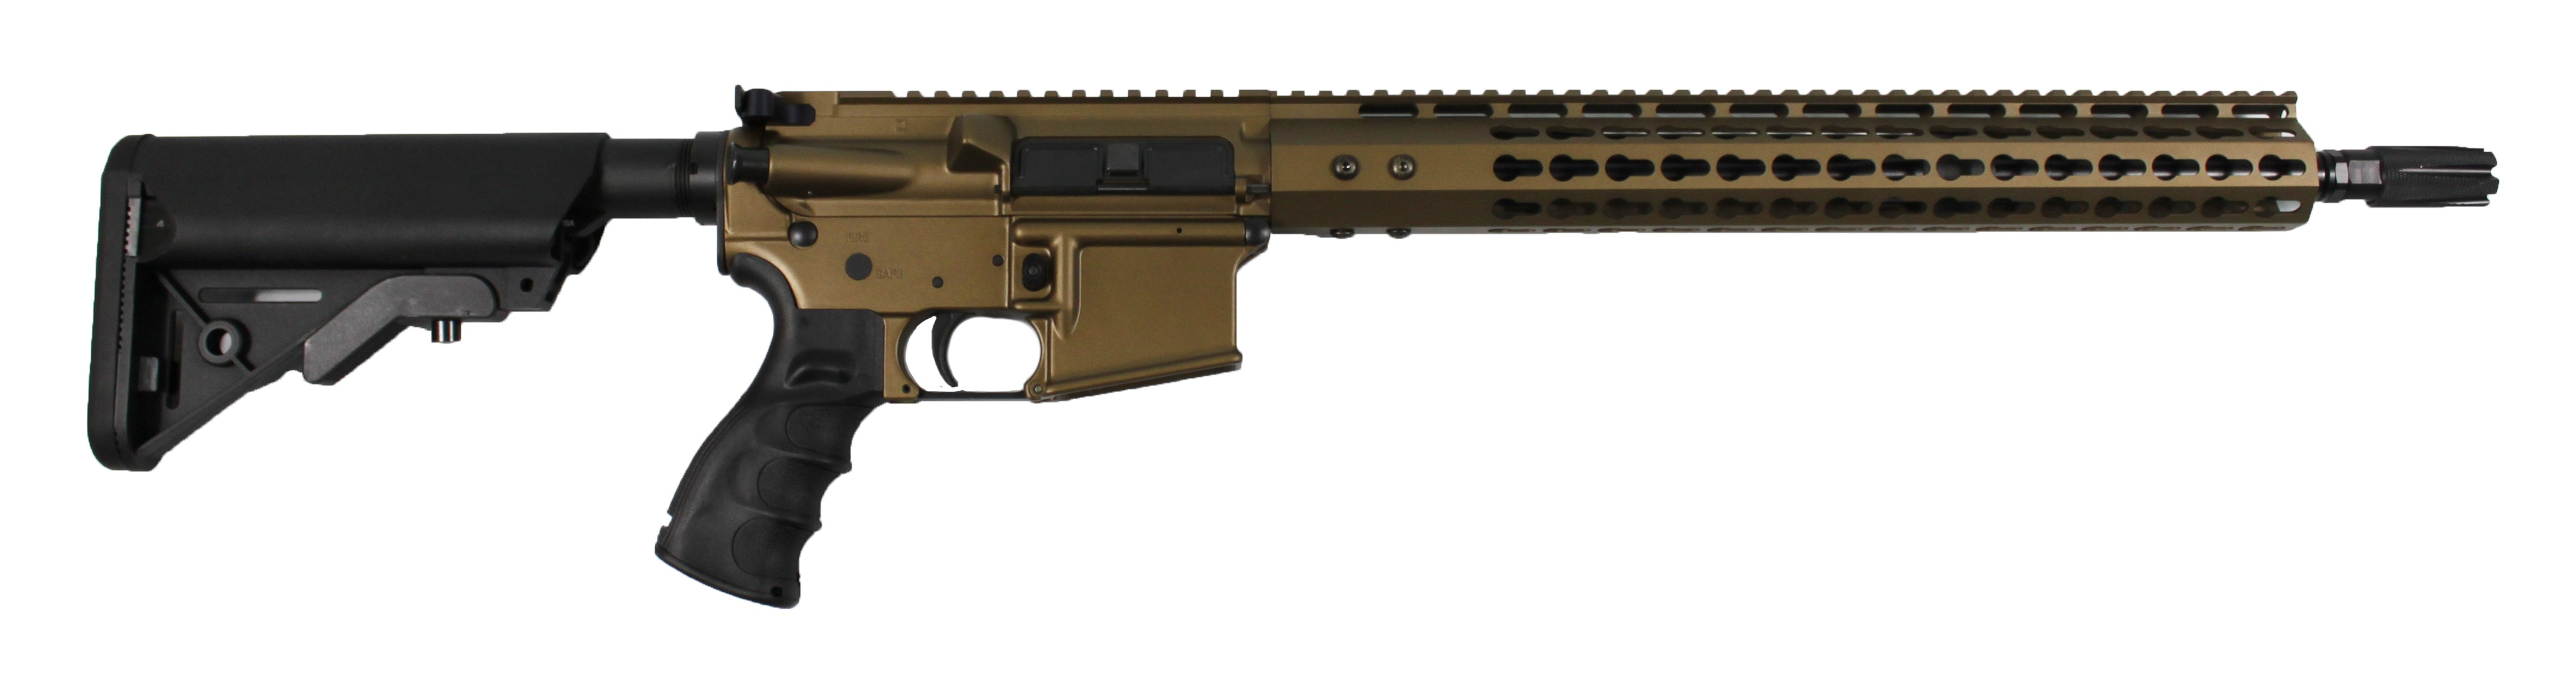 ar 15 complete rifle cbc industries limited edition burnt bronze rifle 223 5 56 cbc compensator sopmod buttstock